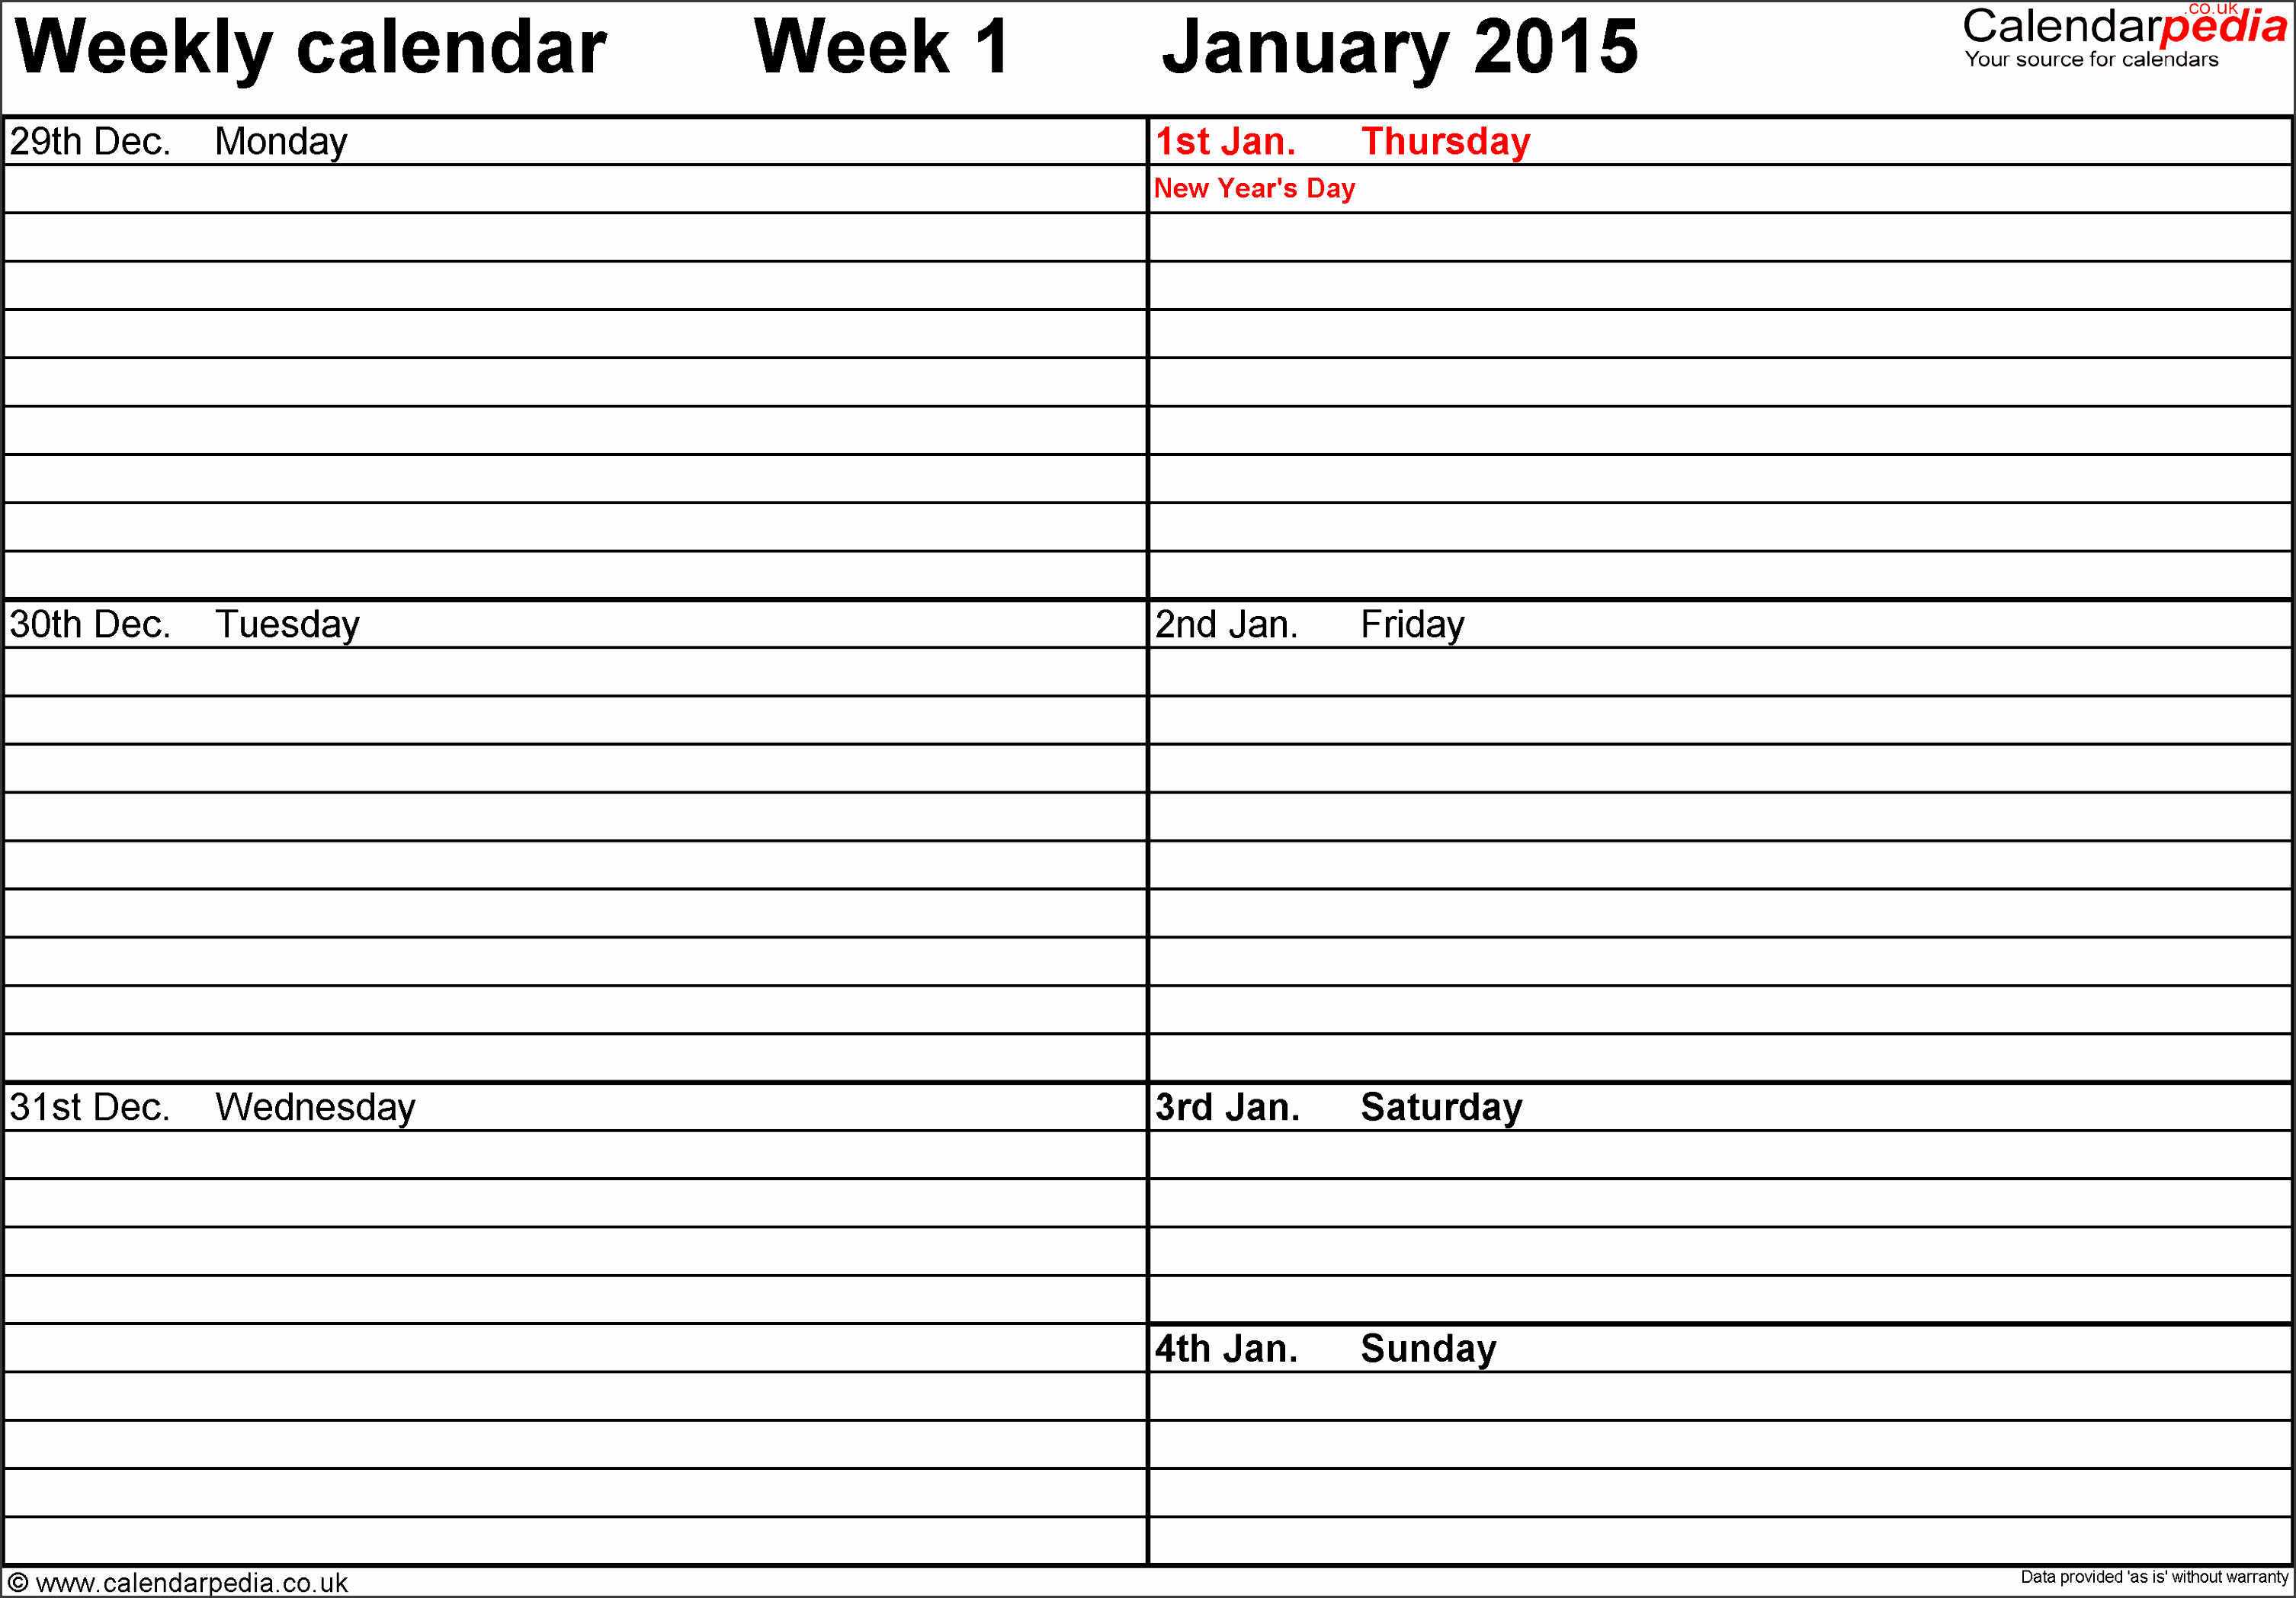 college daily planner template weekly calendar pdf weekly calendar pdf weekly calendar 2015 uk syympu uvolxw